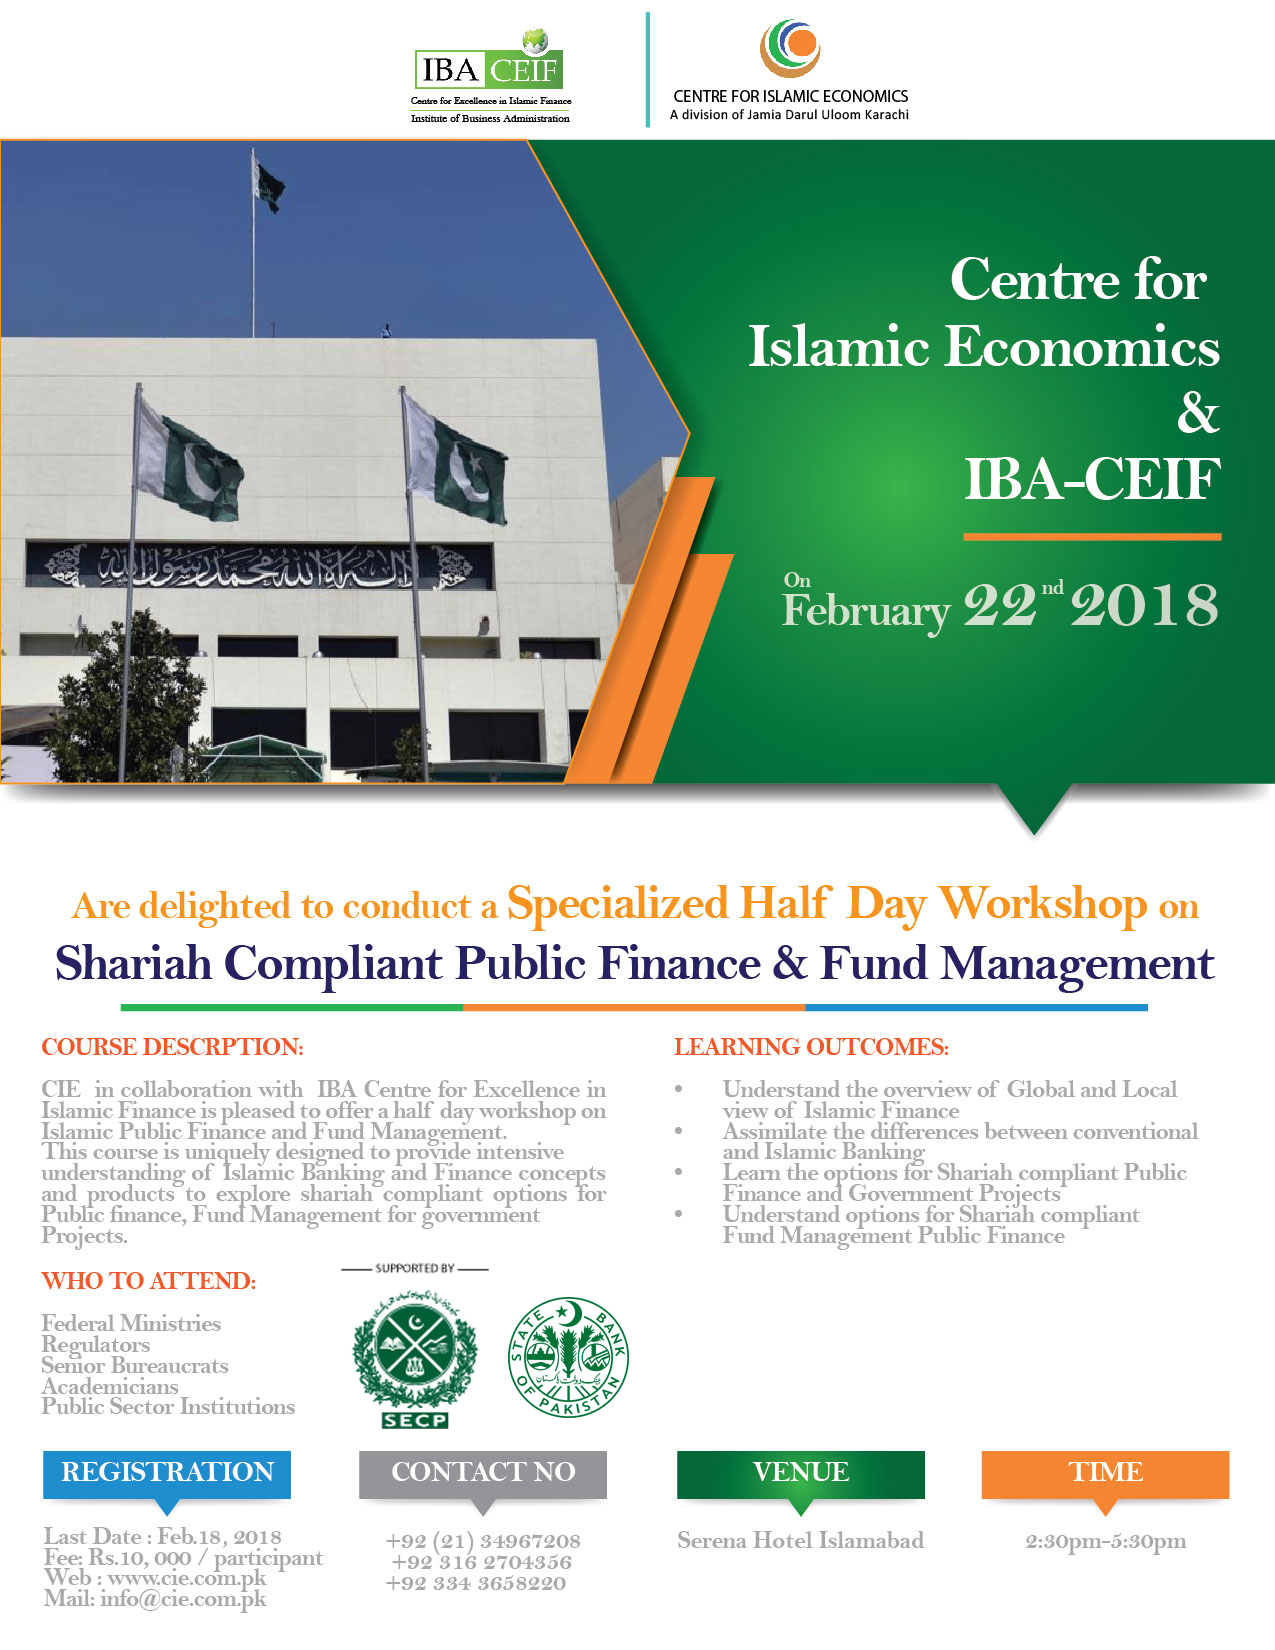 Shariah Compliant Public Finance & Fund Management